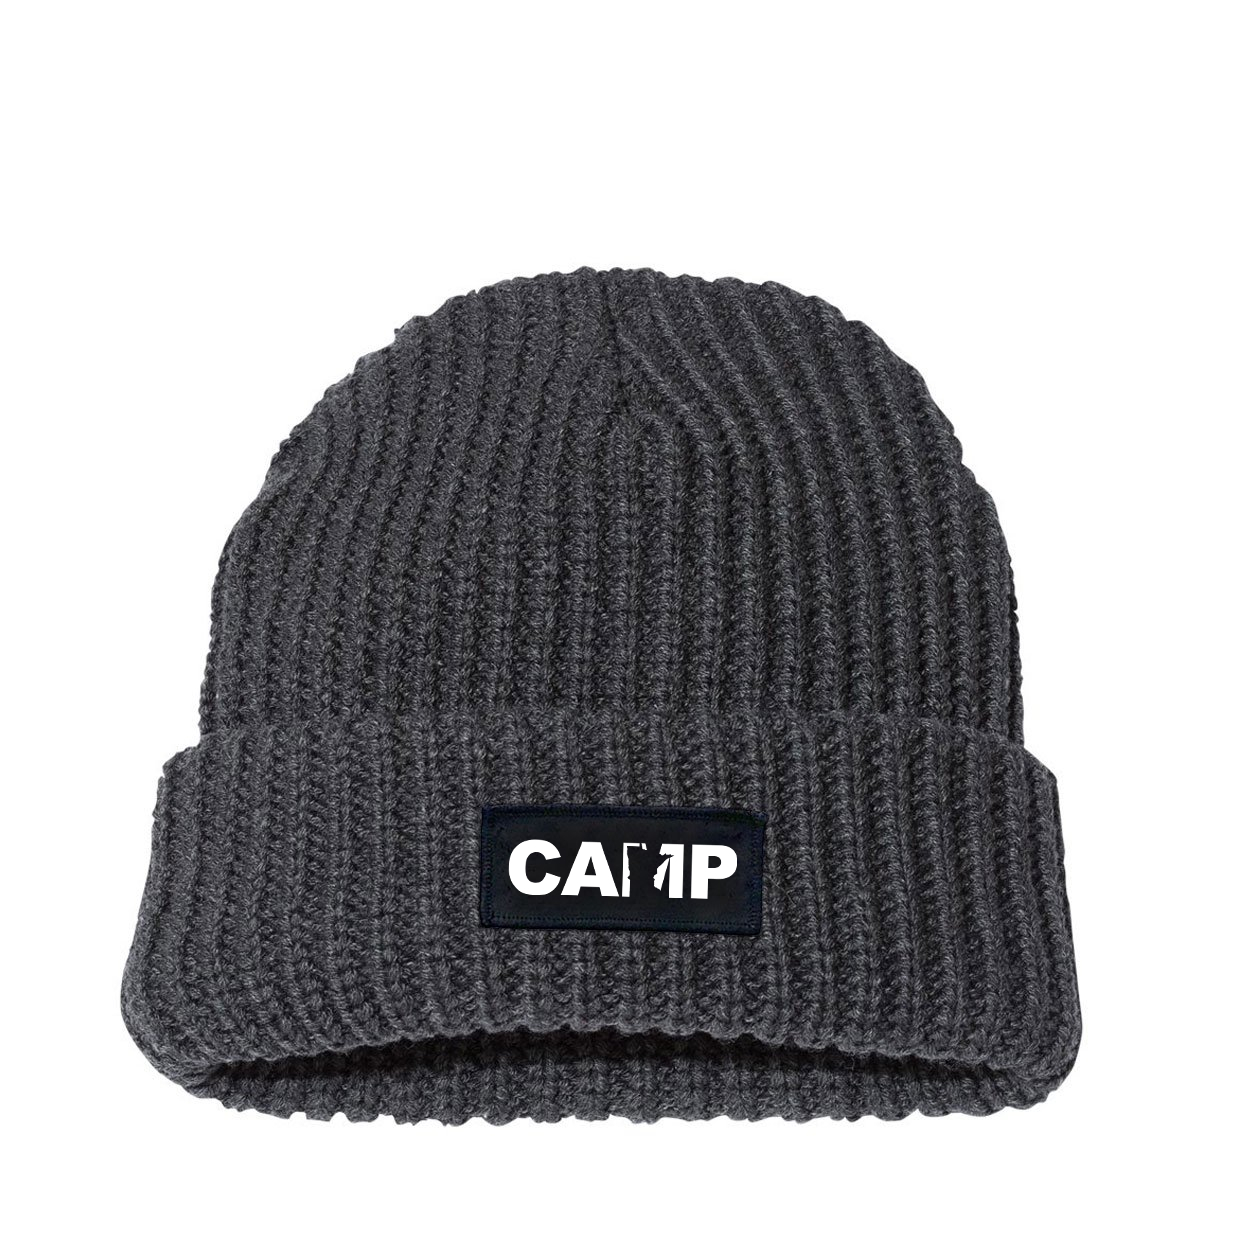 Camp Minnesota Night Out Woven Patch Roll Up Jumbo Chunky Knit Beanie Charcoal (White Logo)